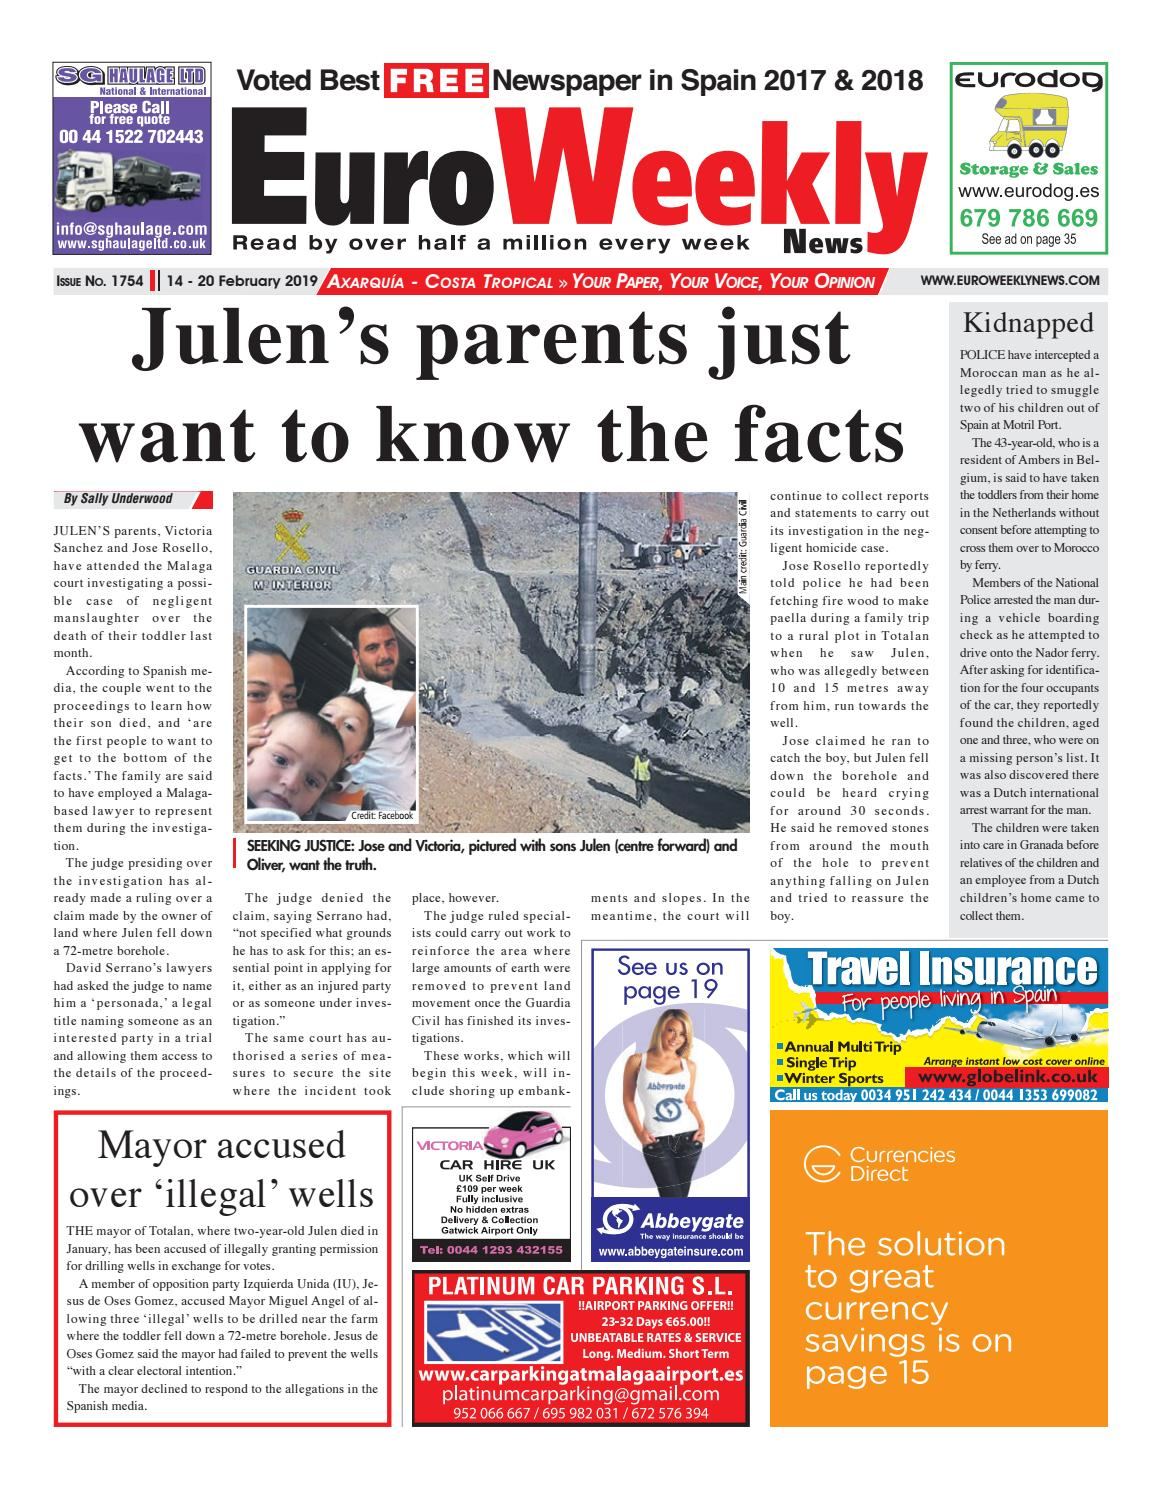 Euro Weekly News - Axarquia - 14 - 20 Feb 2019 Issue 1754 by